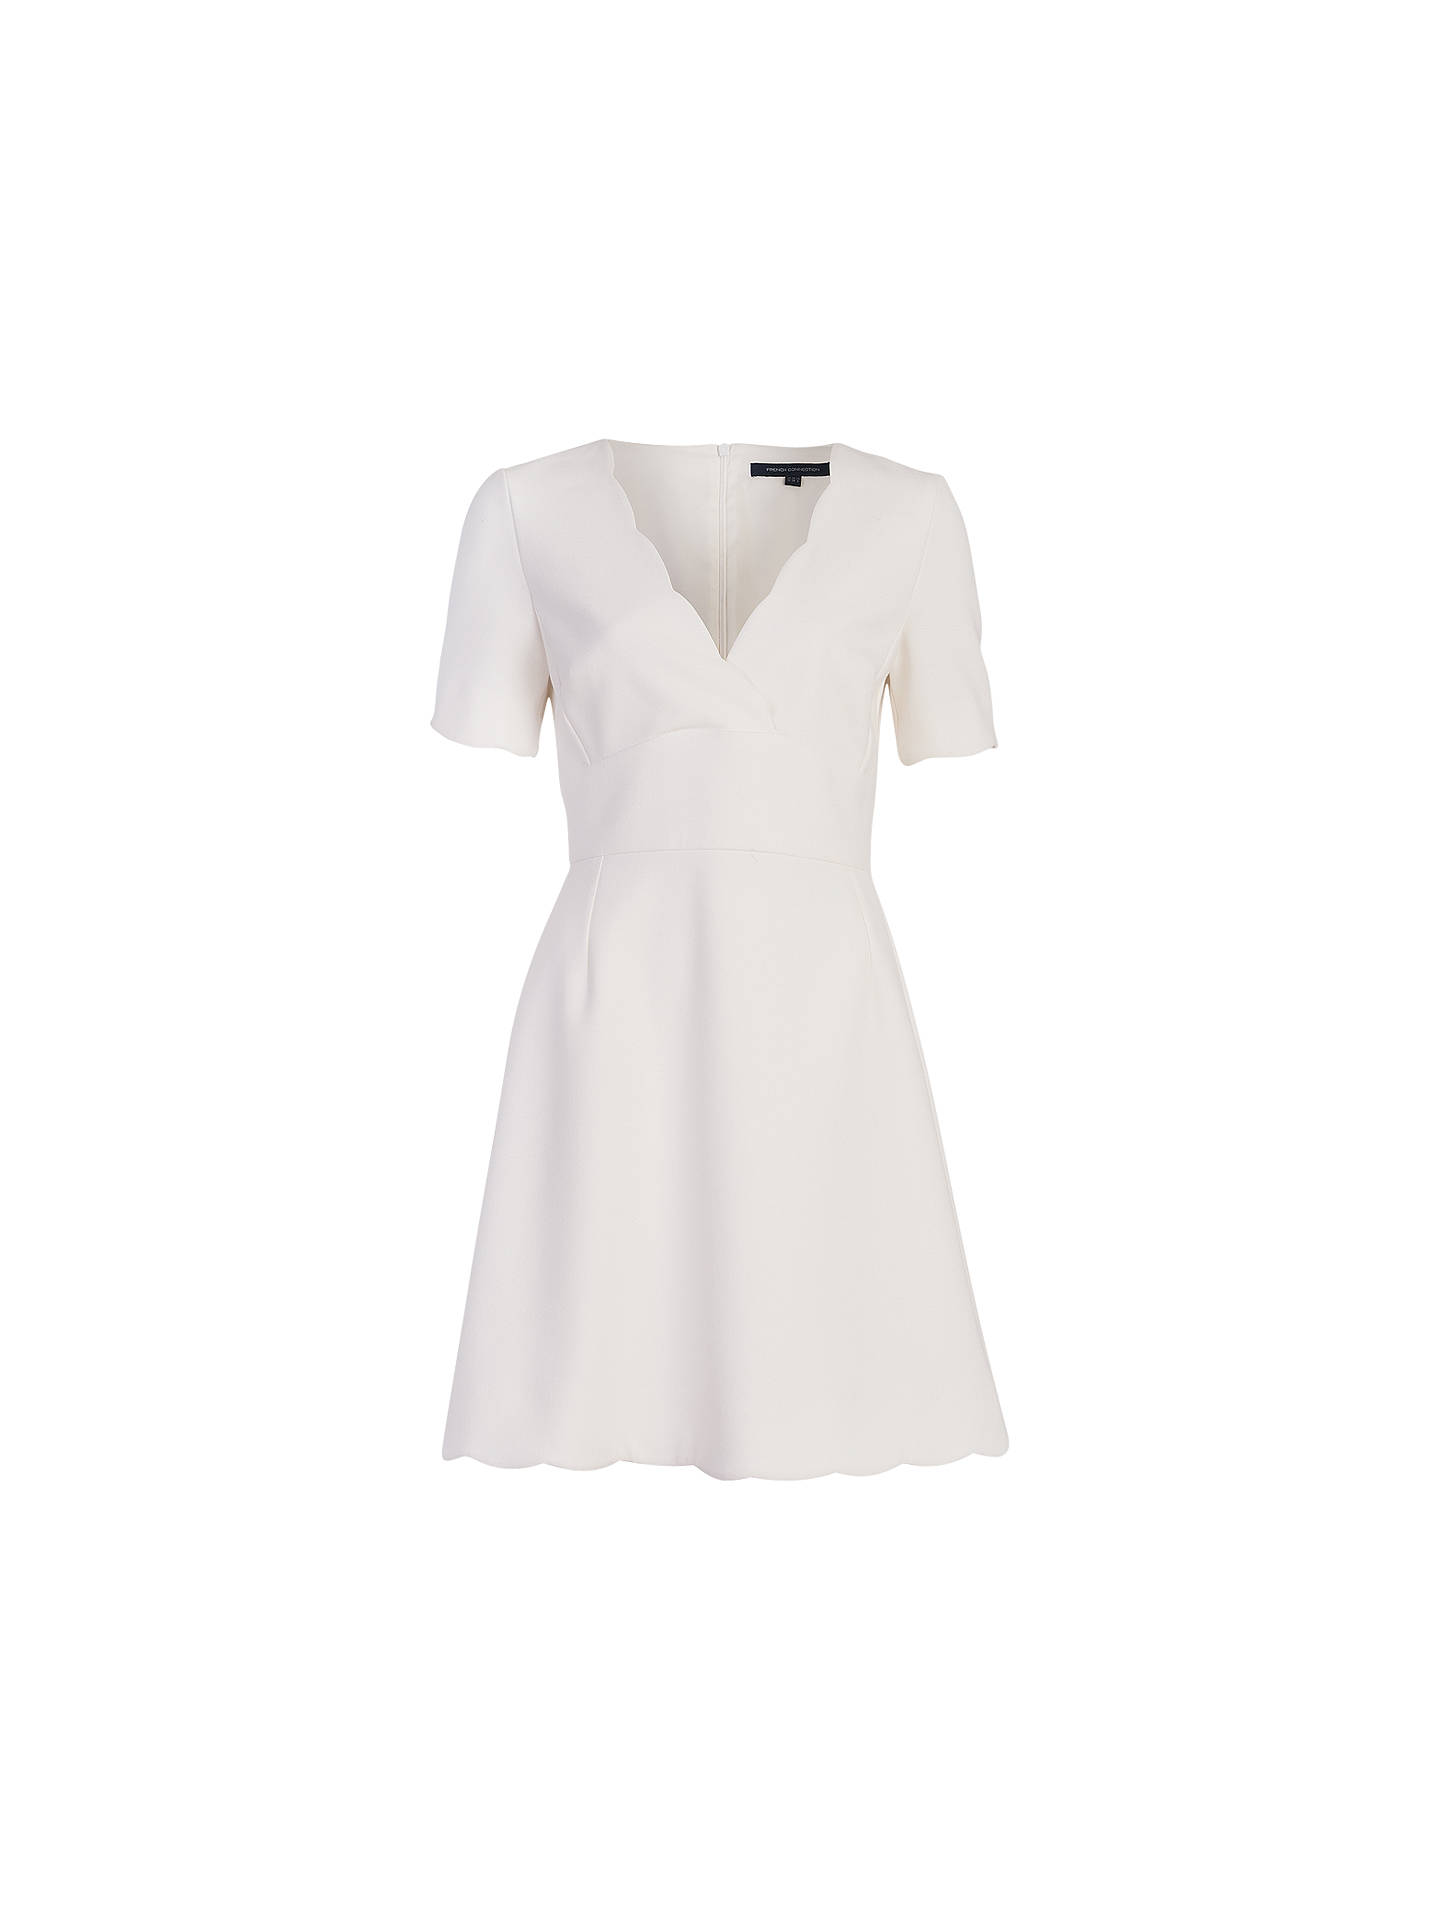 8ef841e61599 Buy French Connection Sundae Dress, Daisy White, 6 Online at johnlewis.com  ...